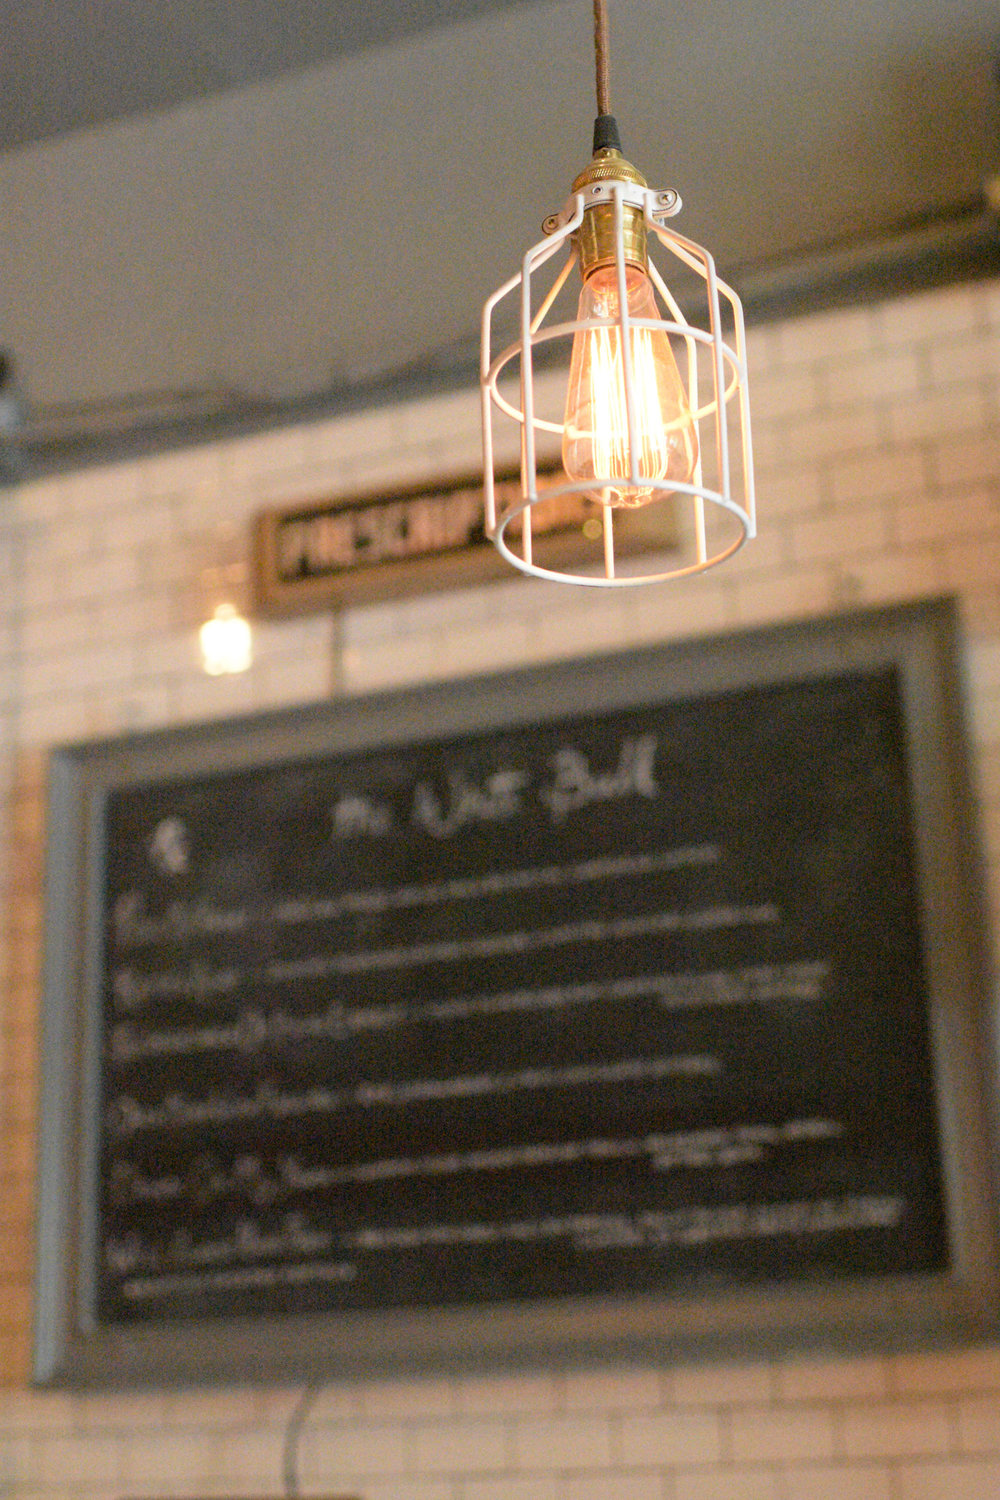 The White Bull's dining space is a pristine mix of exposed wood and industrial lighting, which gives the space an upscale and welcoming feel.